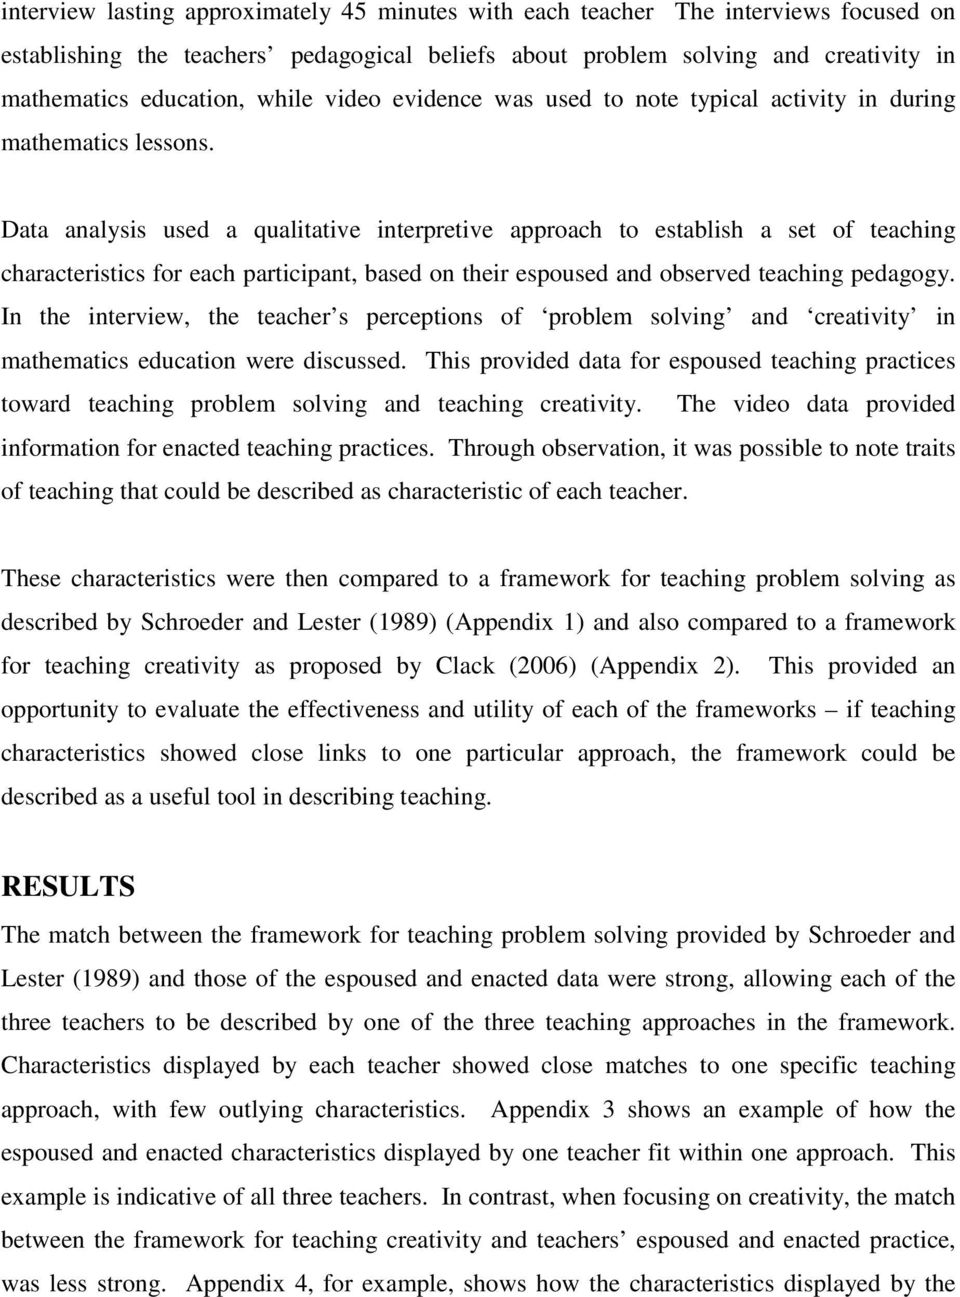 Data analysis used a qualitative interpretive approach to establish a set of teaching characteristics for each participant, based on their espoused and observed teaching pedagogy.